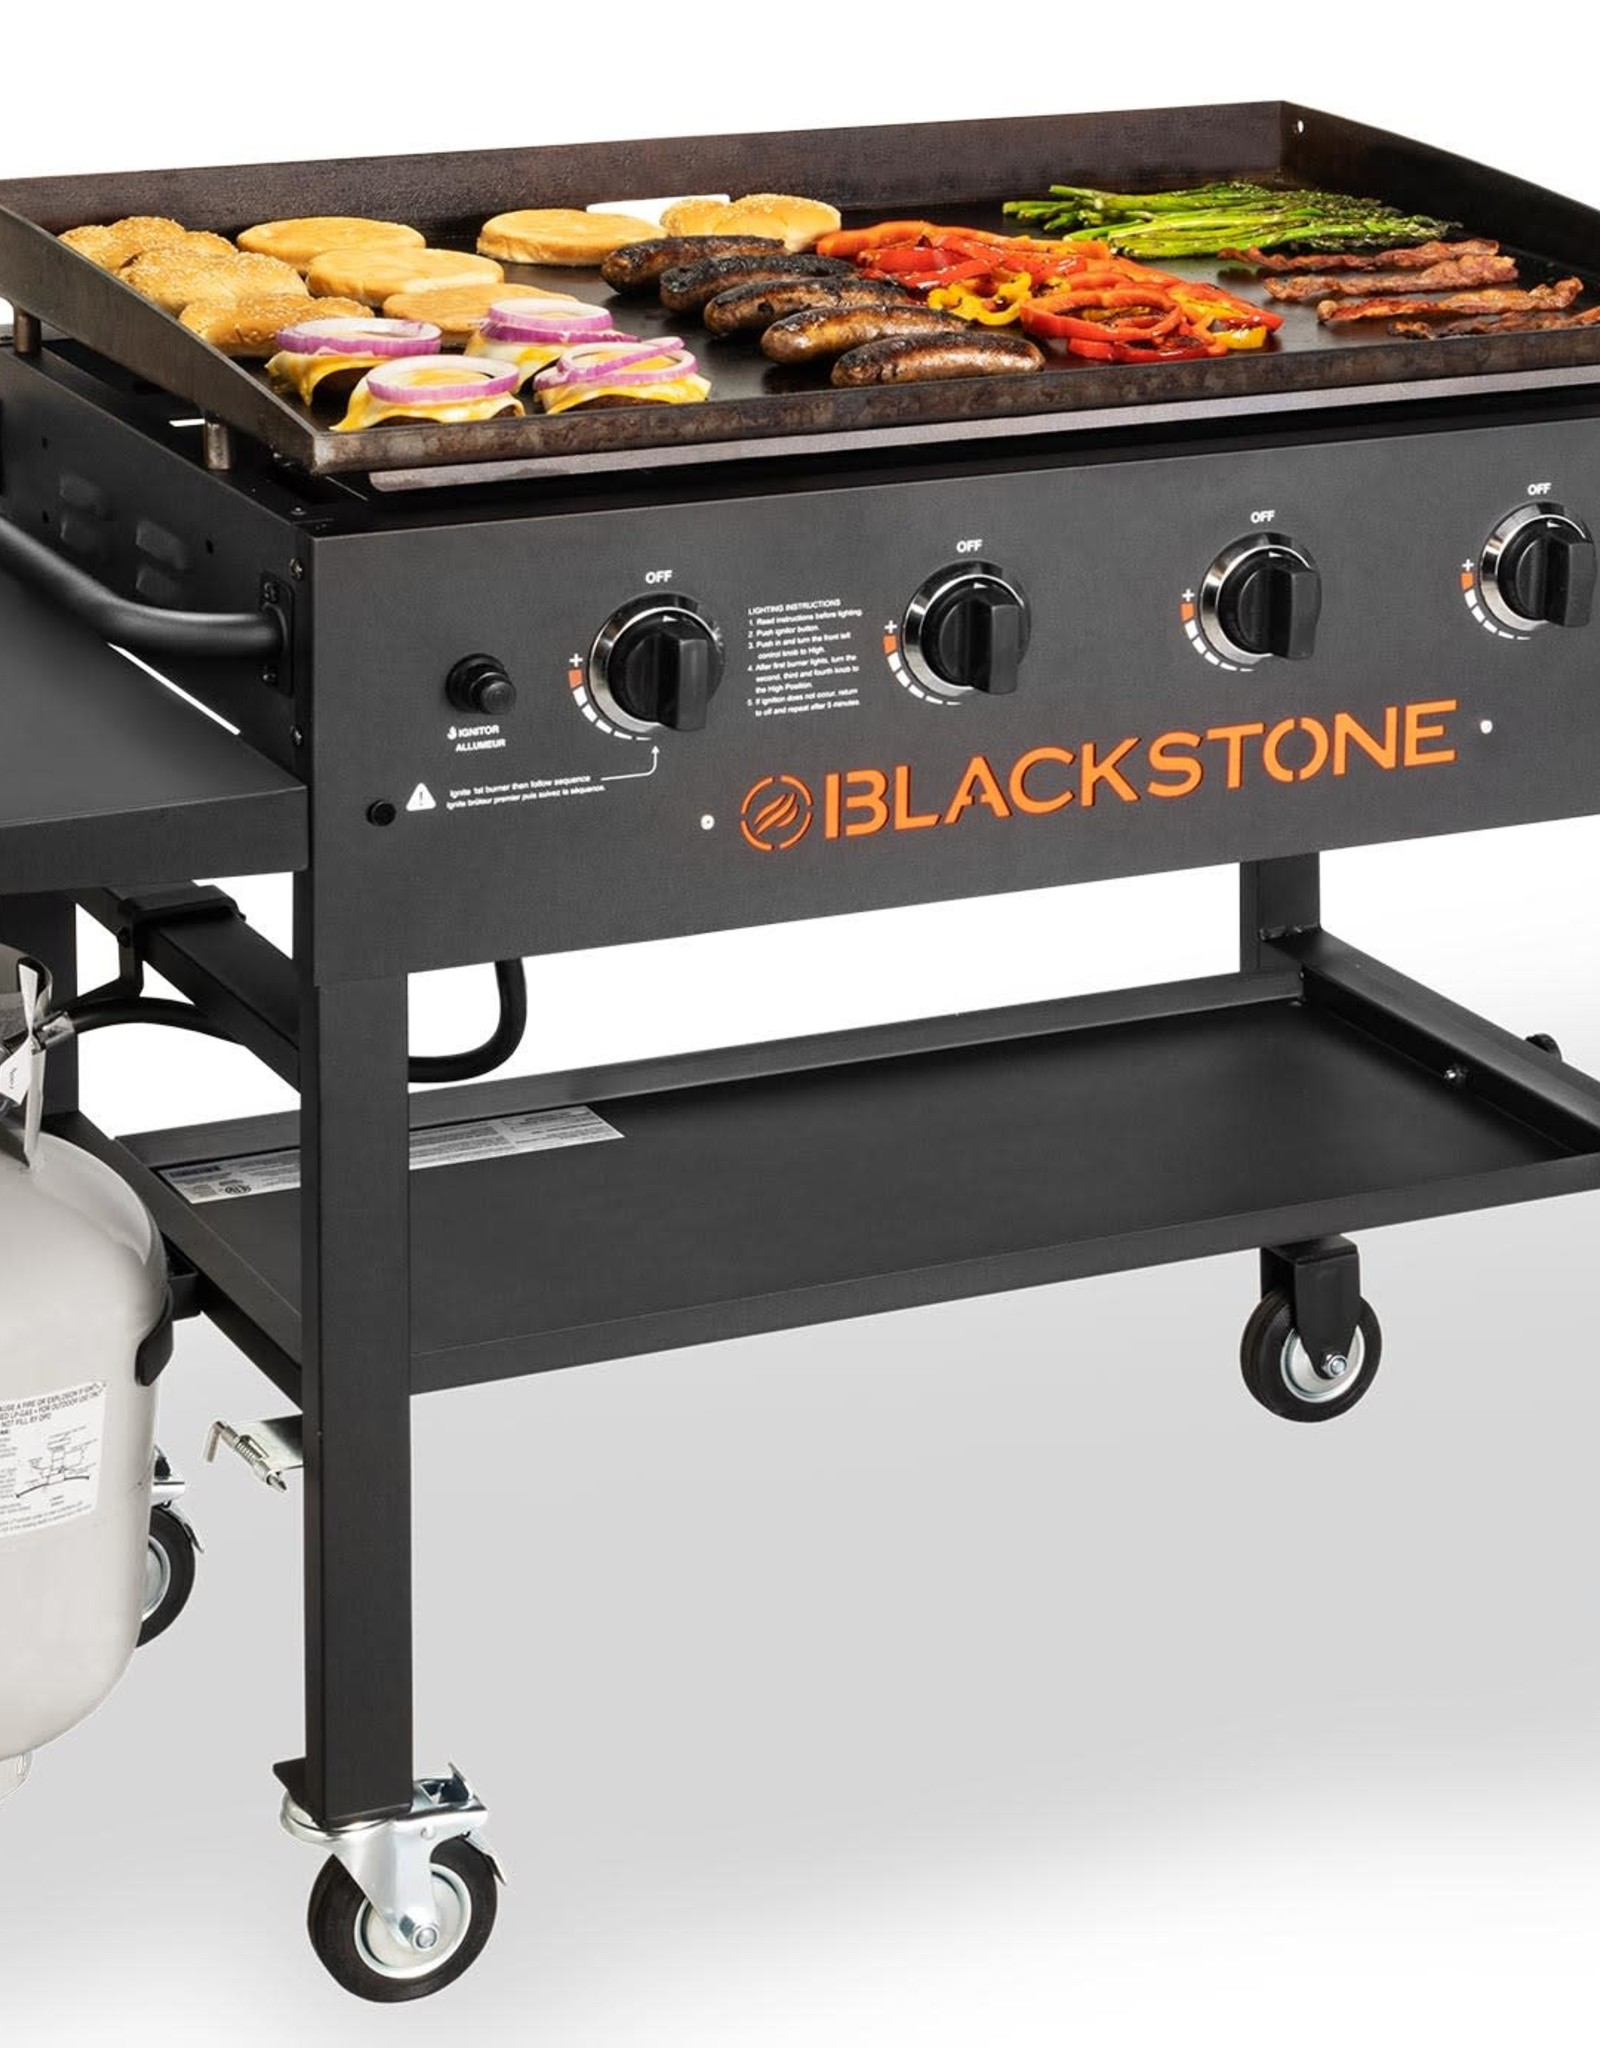 "Blackstone Blackstone 36"" 4 Burner Griddle Cooking Station, 60K BTUs 1554"